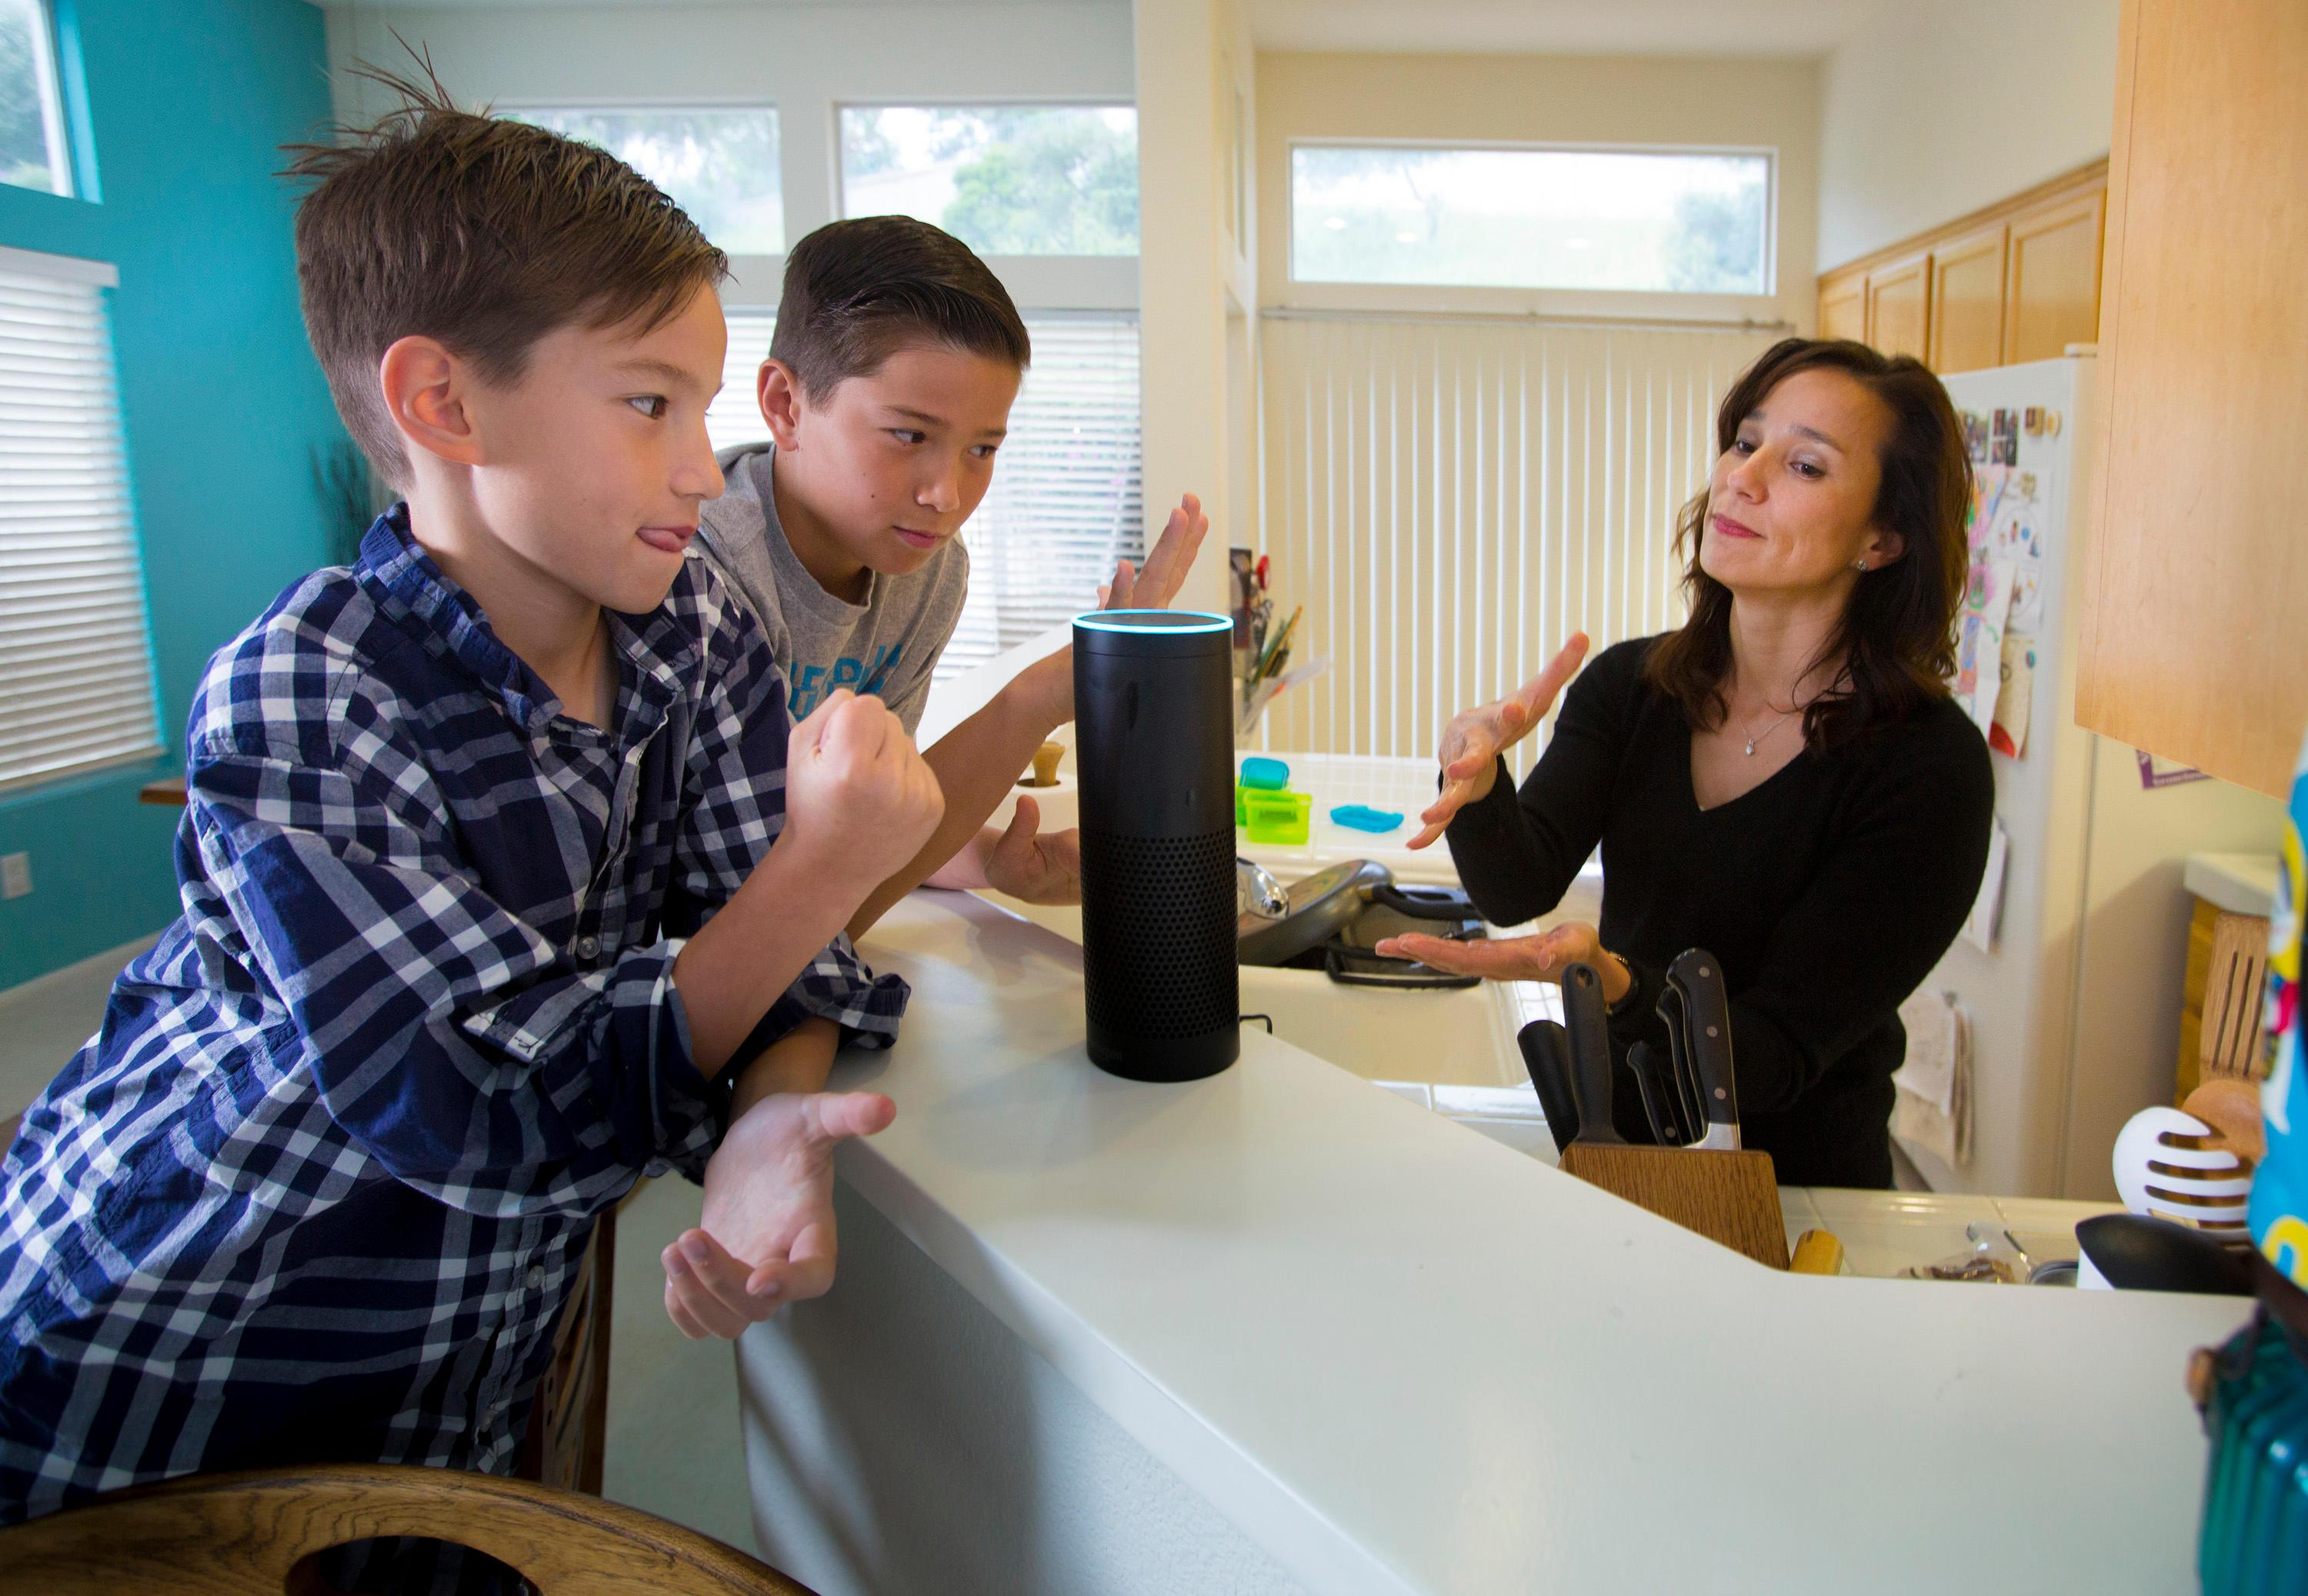 Alexa will soon sound even more natural and should be able to join in conversations more convincingly